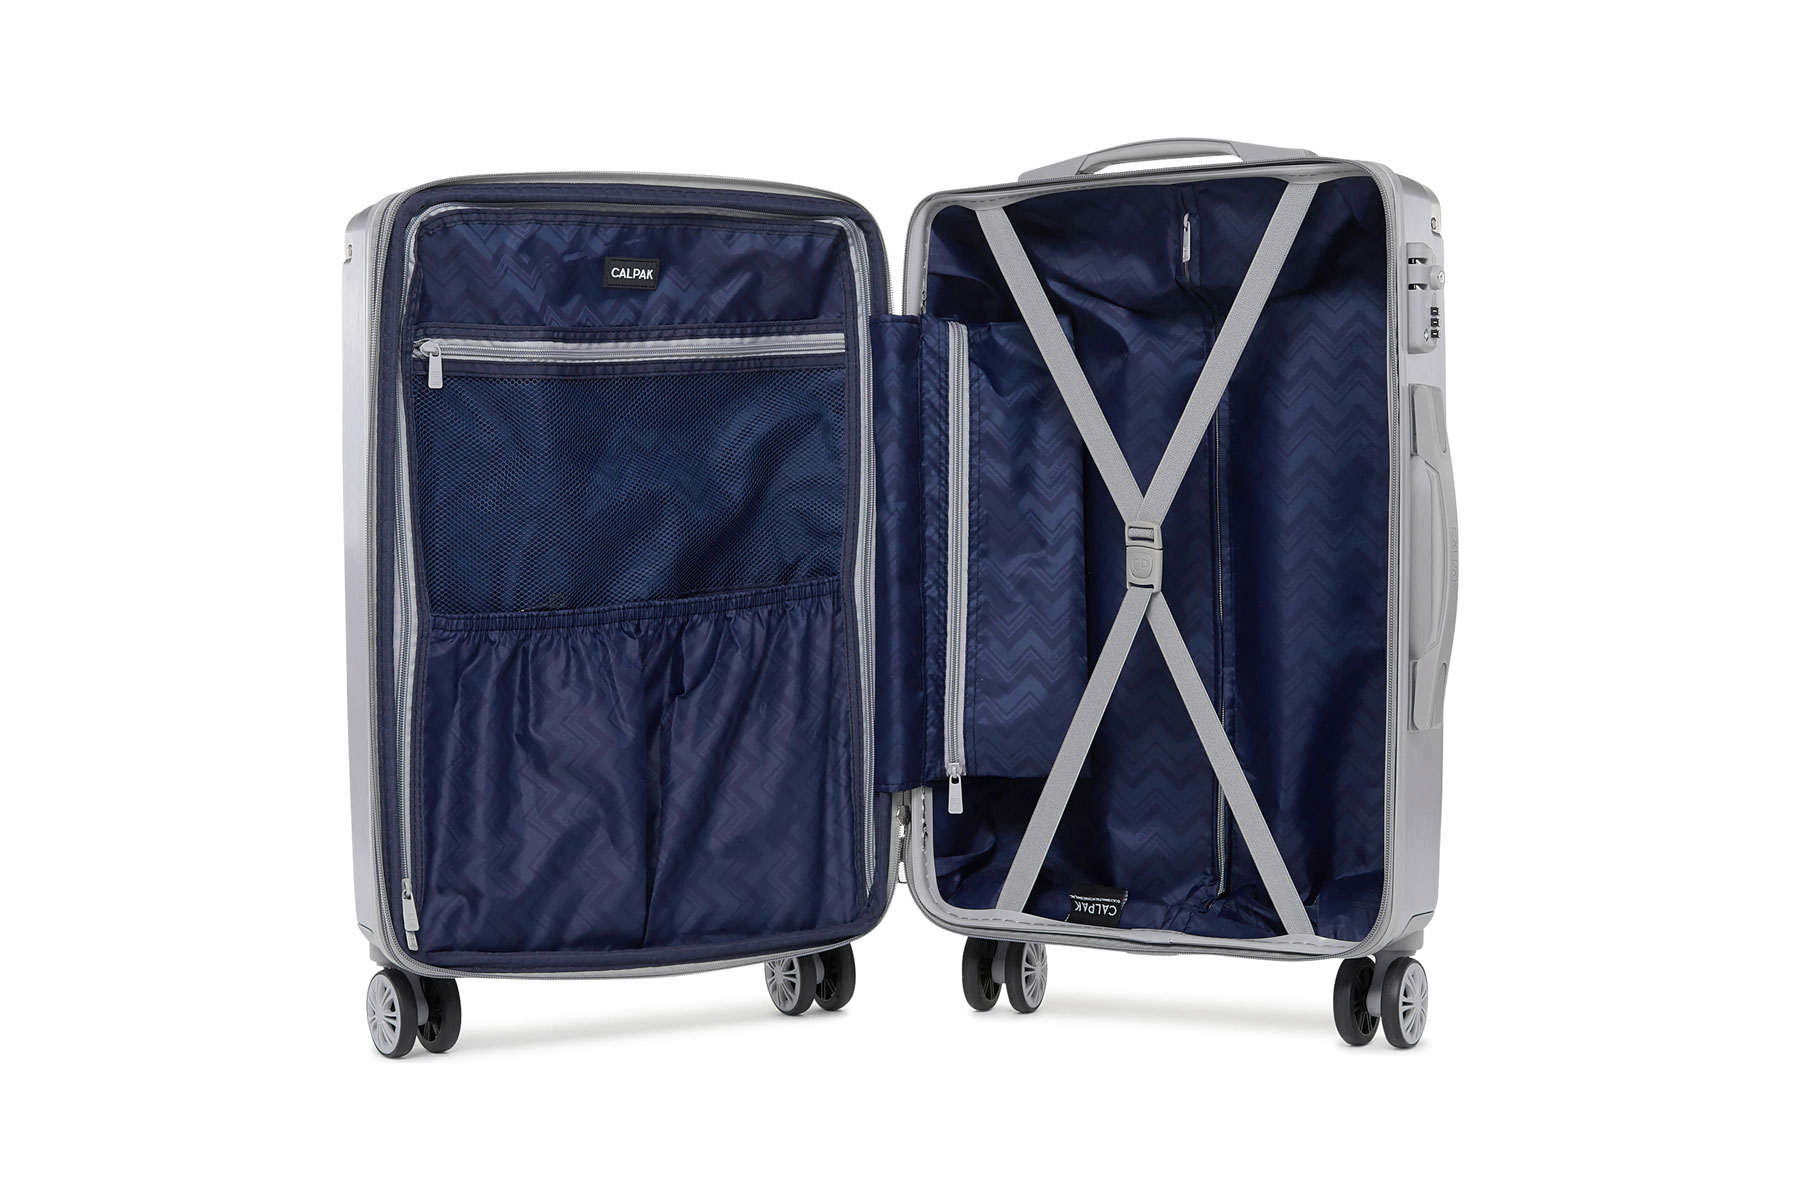 Interior of silver carry-on suitcase